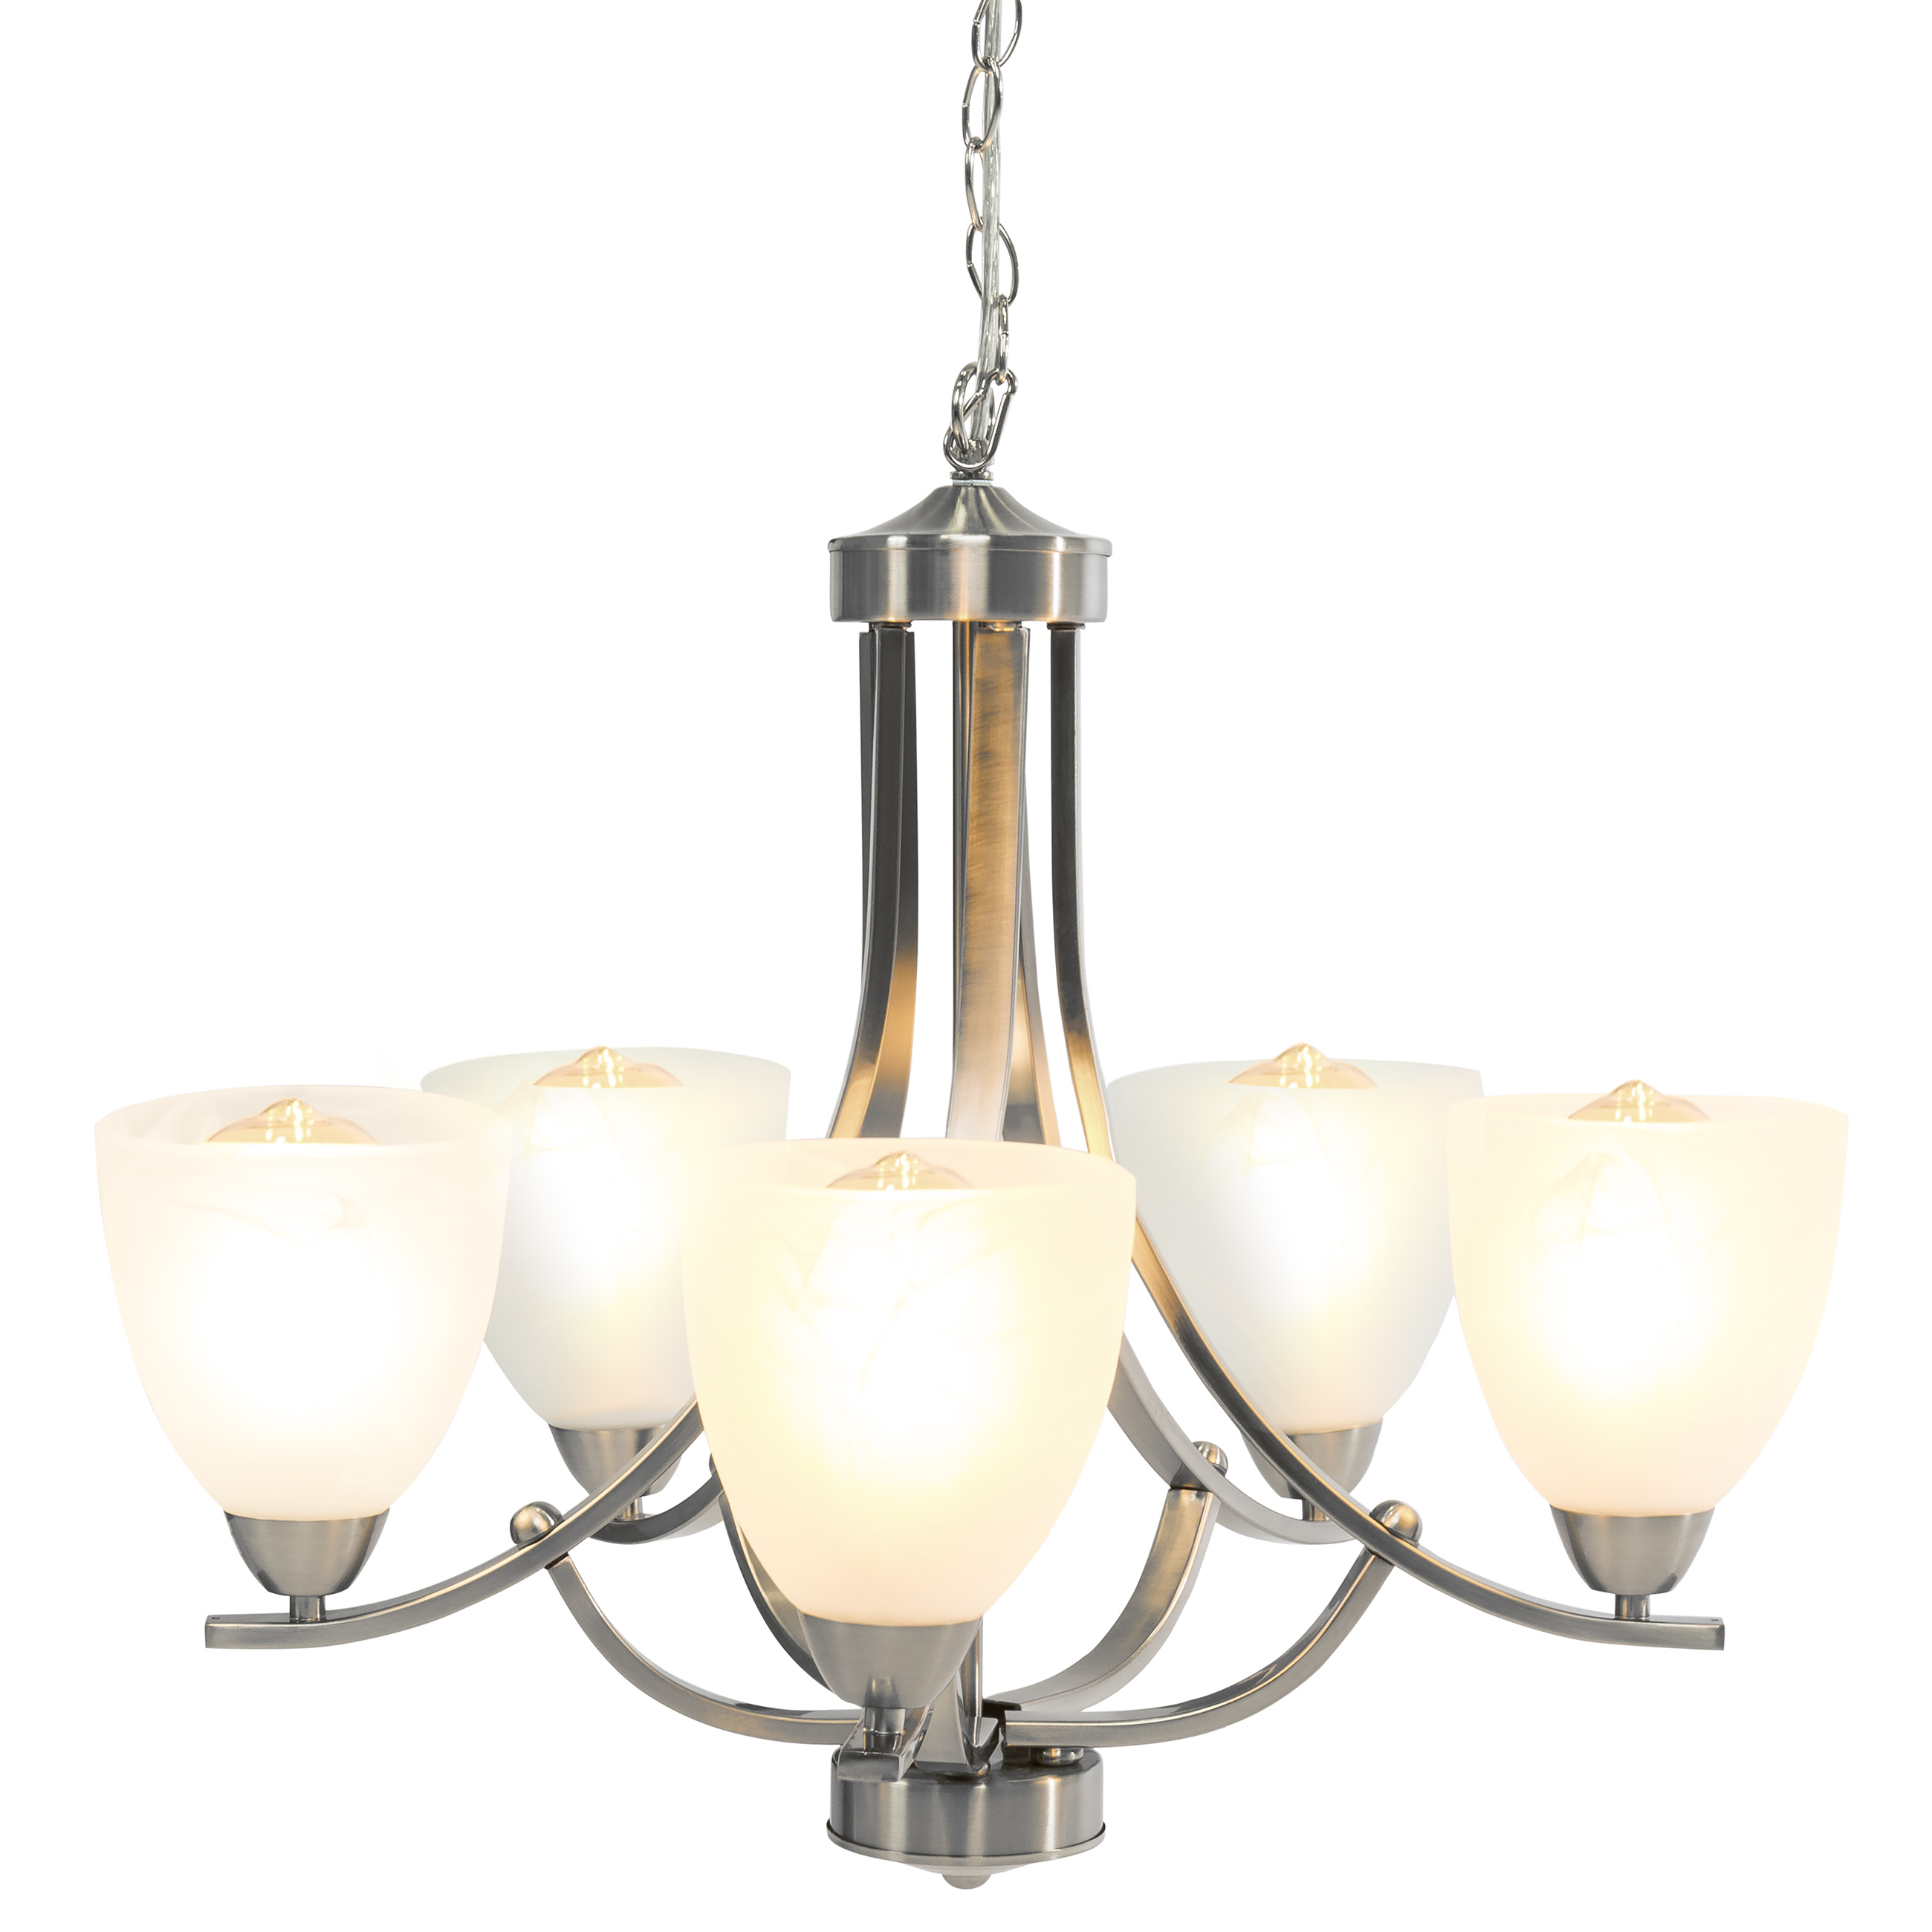 Best Choice Products 22in 5-Light Contemporary Chandelier Pendant Lighting Fixture for Home, Kitchen Brushed Nickel by Best Choice Products